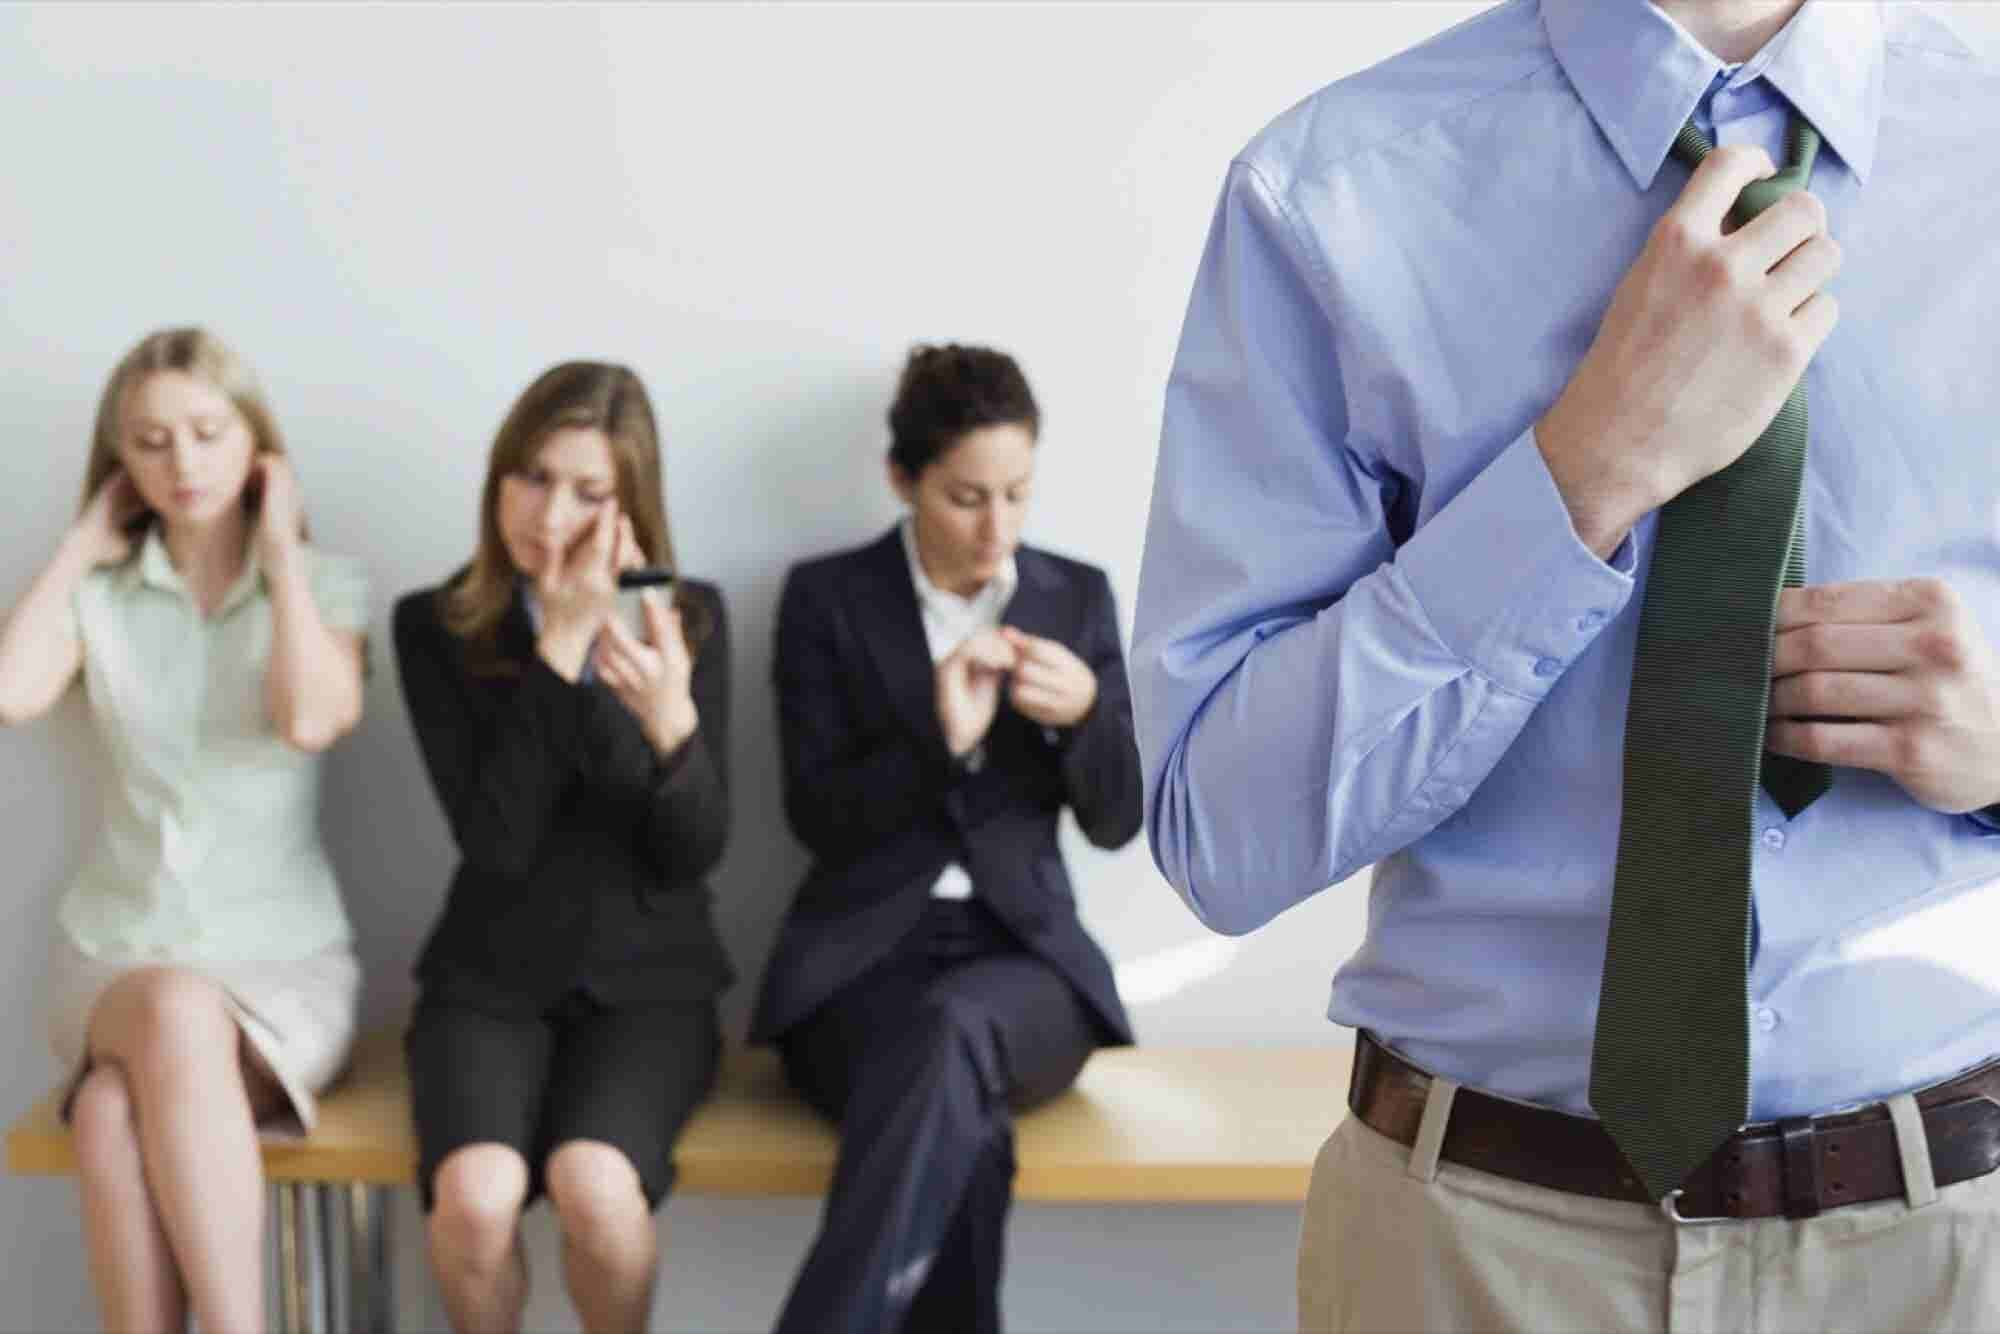 Selling Yourself in an Interview Without 'Selling'